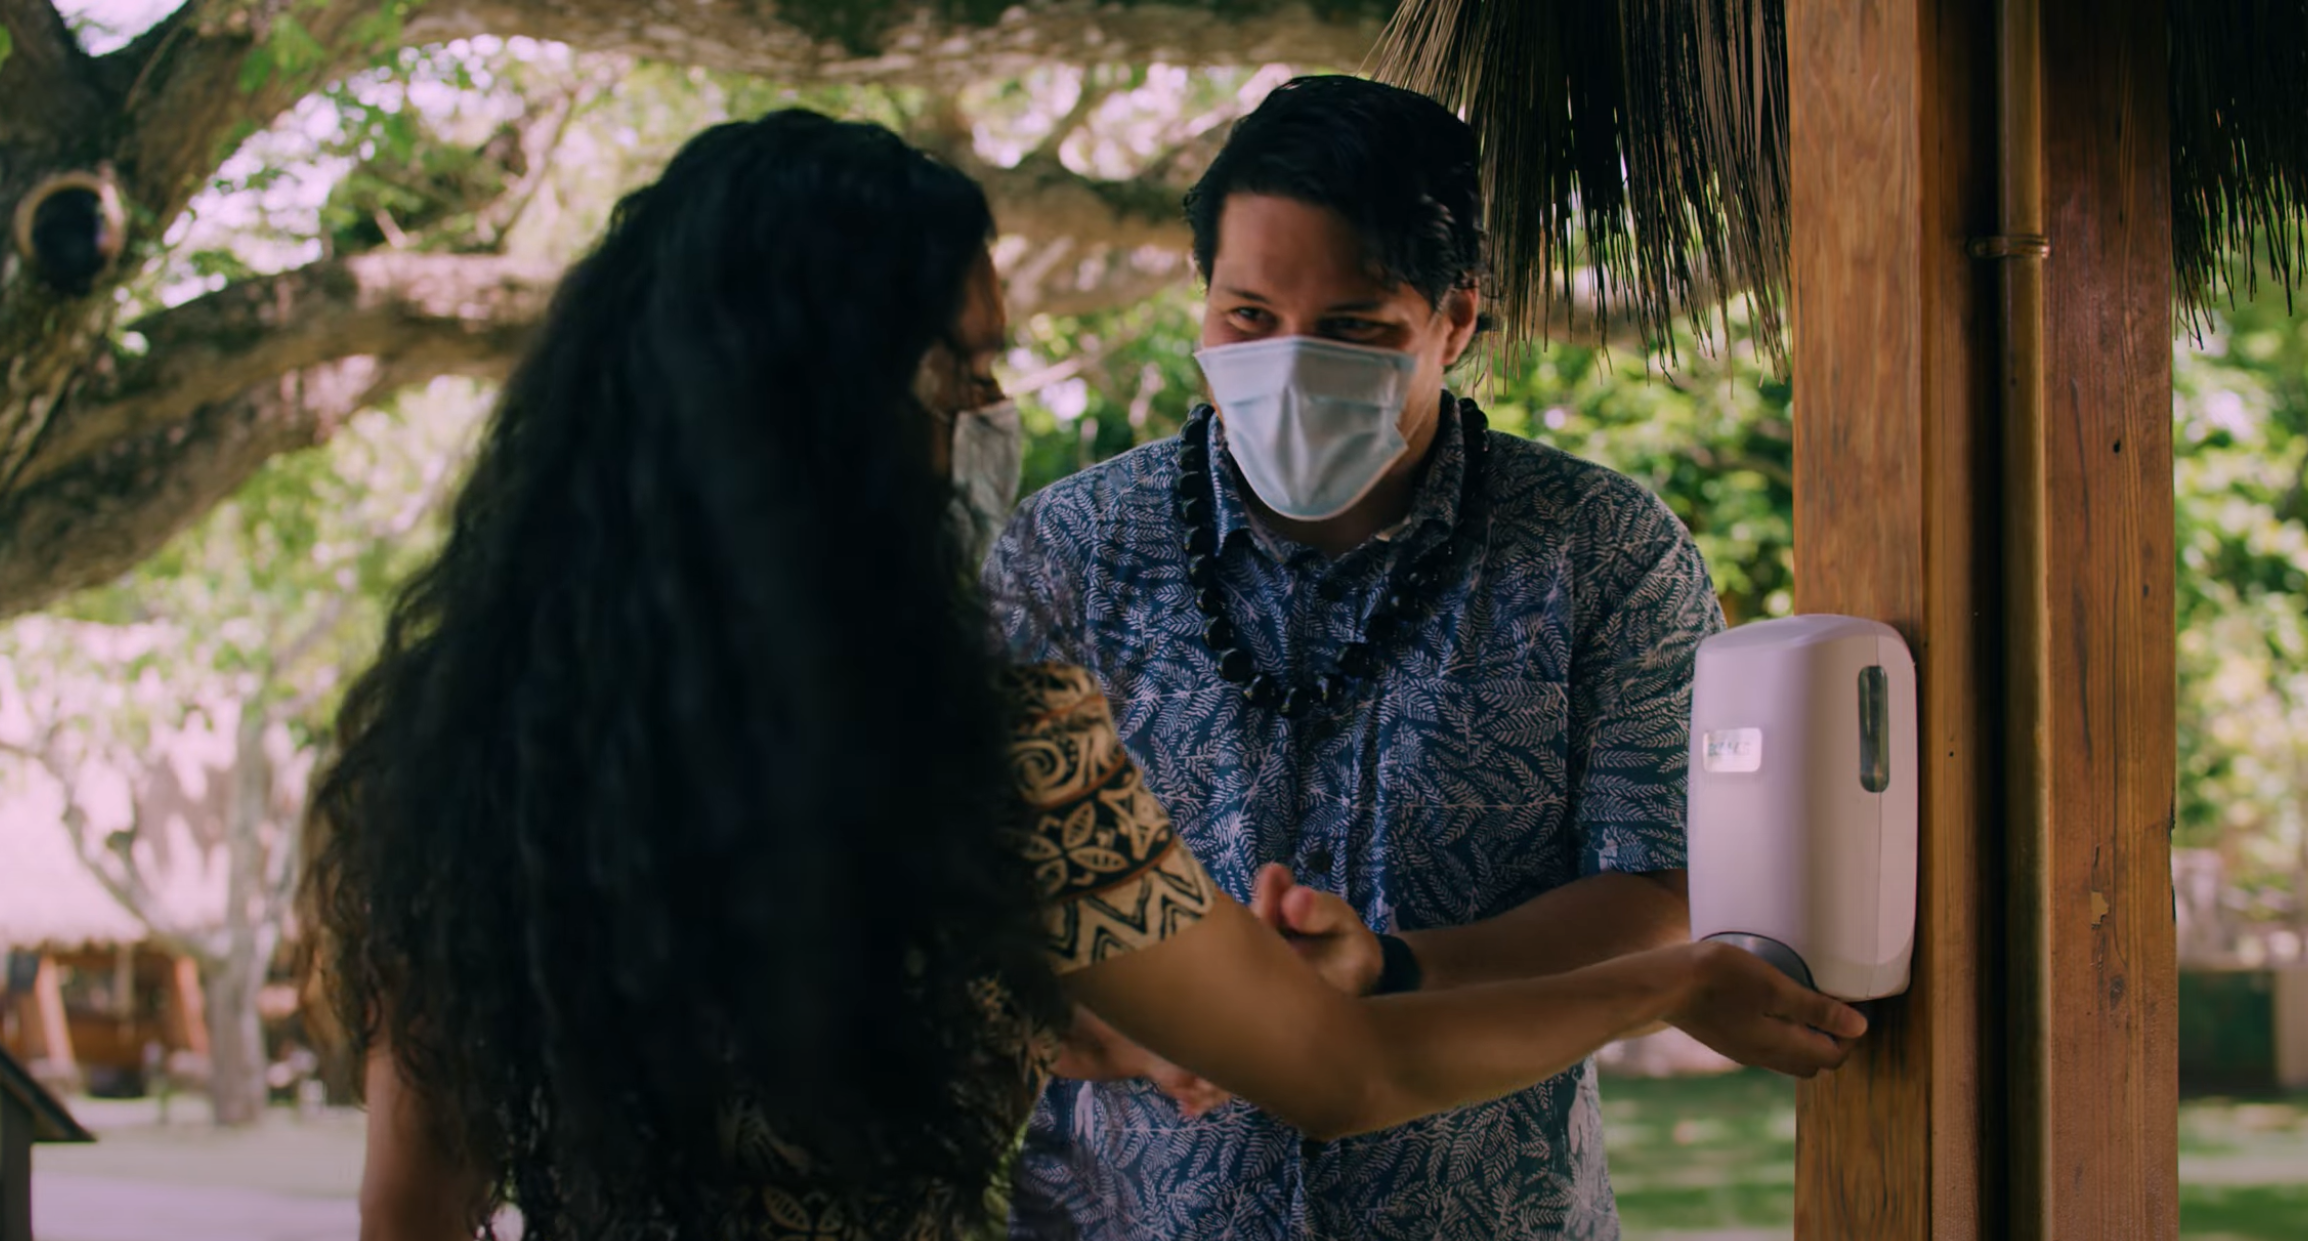 Two people at the Polynesian Cultural Center utilizes on of the hand sanitizing stations. The Center plans to fully reopen in March, 2021.